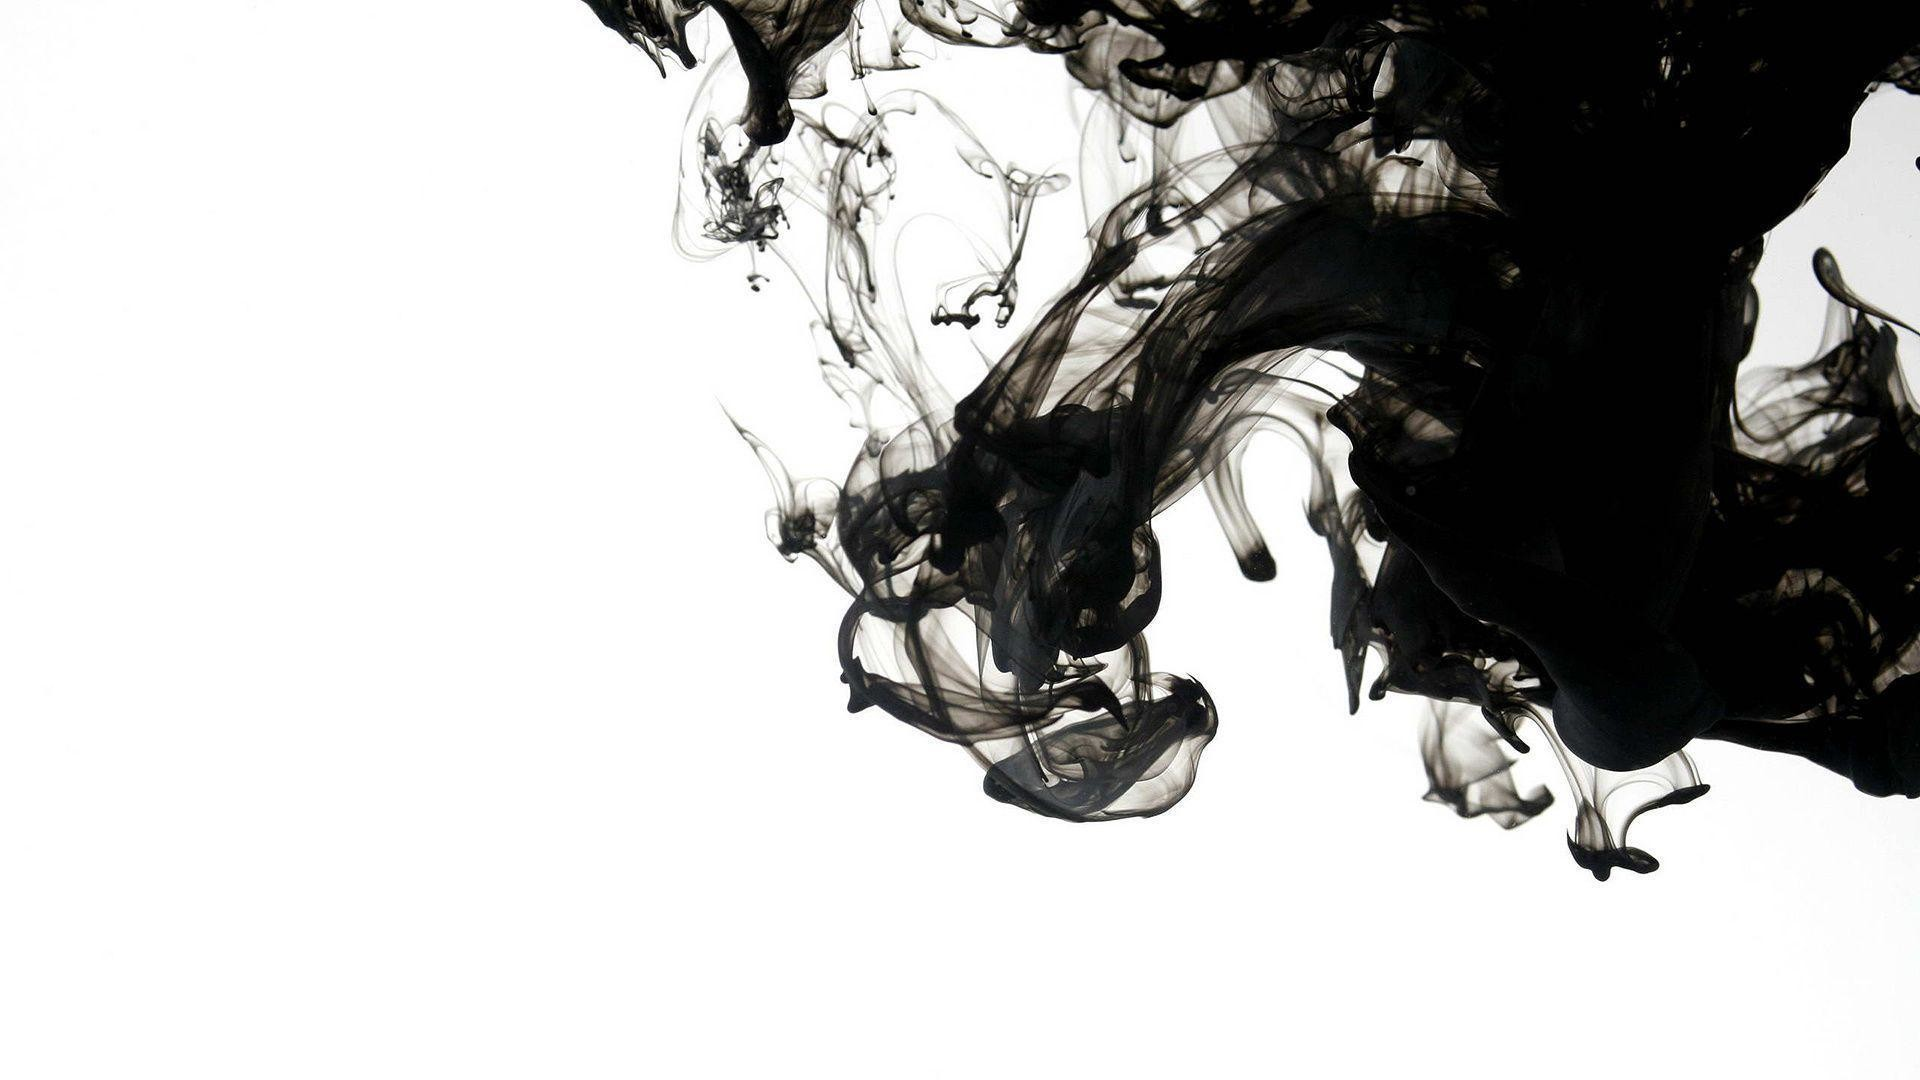 Wallpapers For > White Abstract Wallpapers 1080p